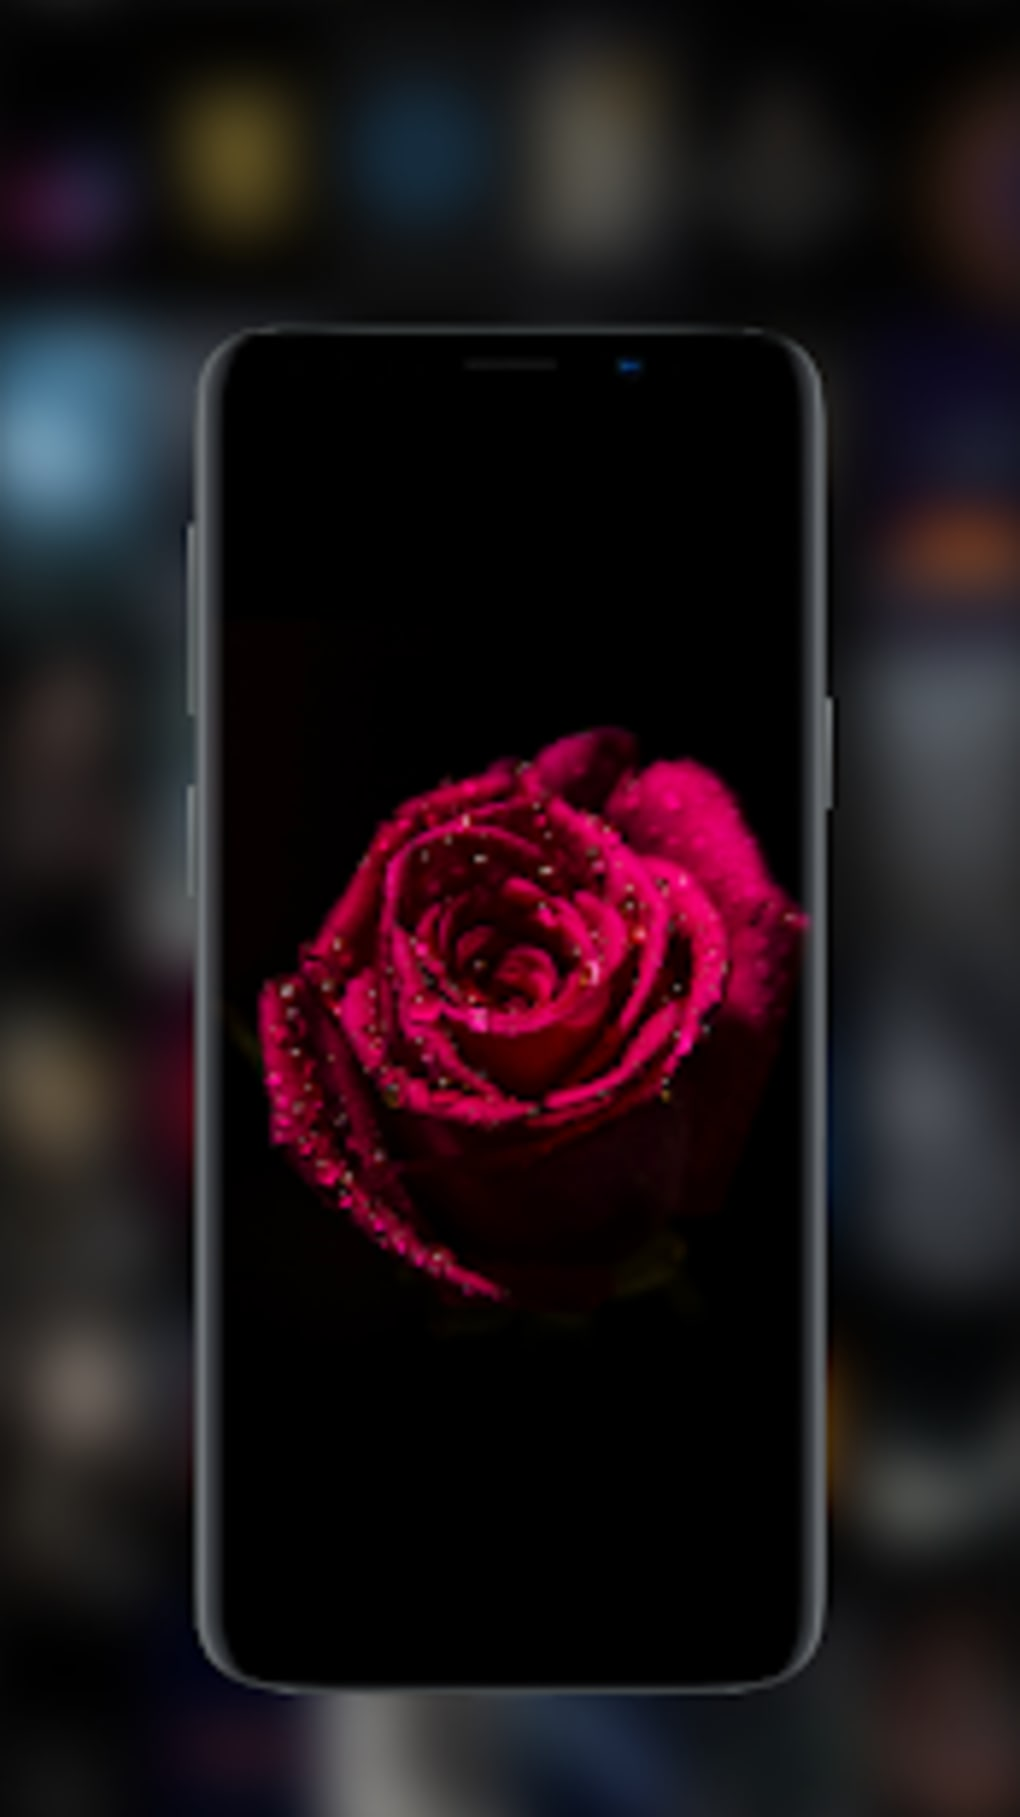 Black Wallpapers 4k Dark Amoled Backgrounds Apk For Android